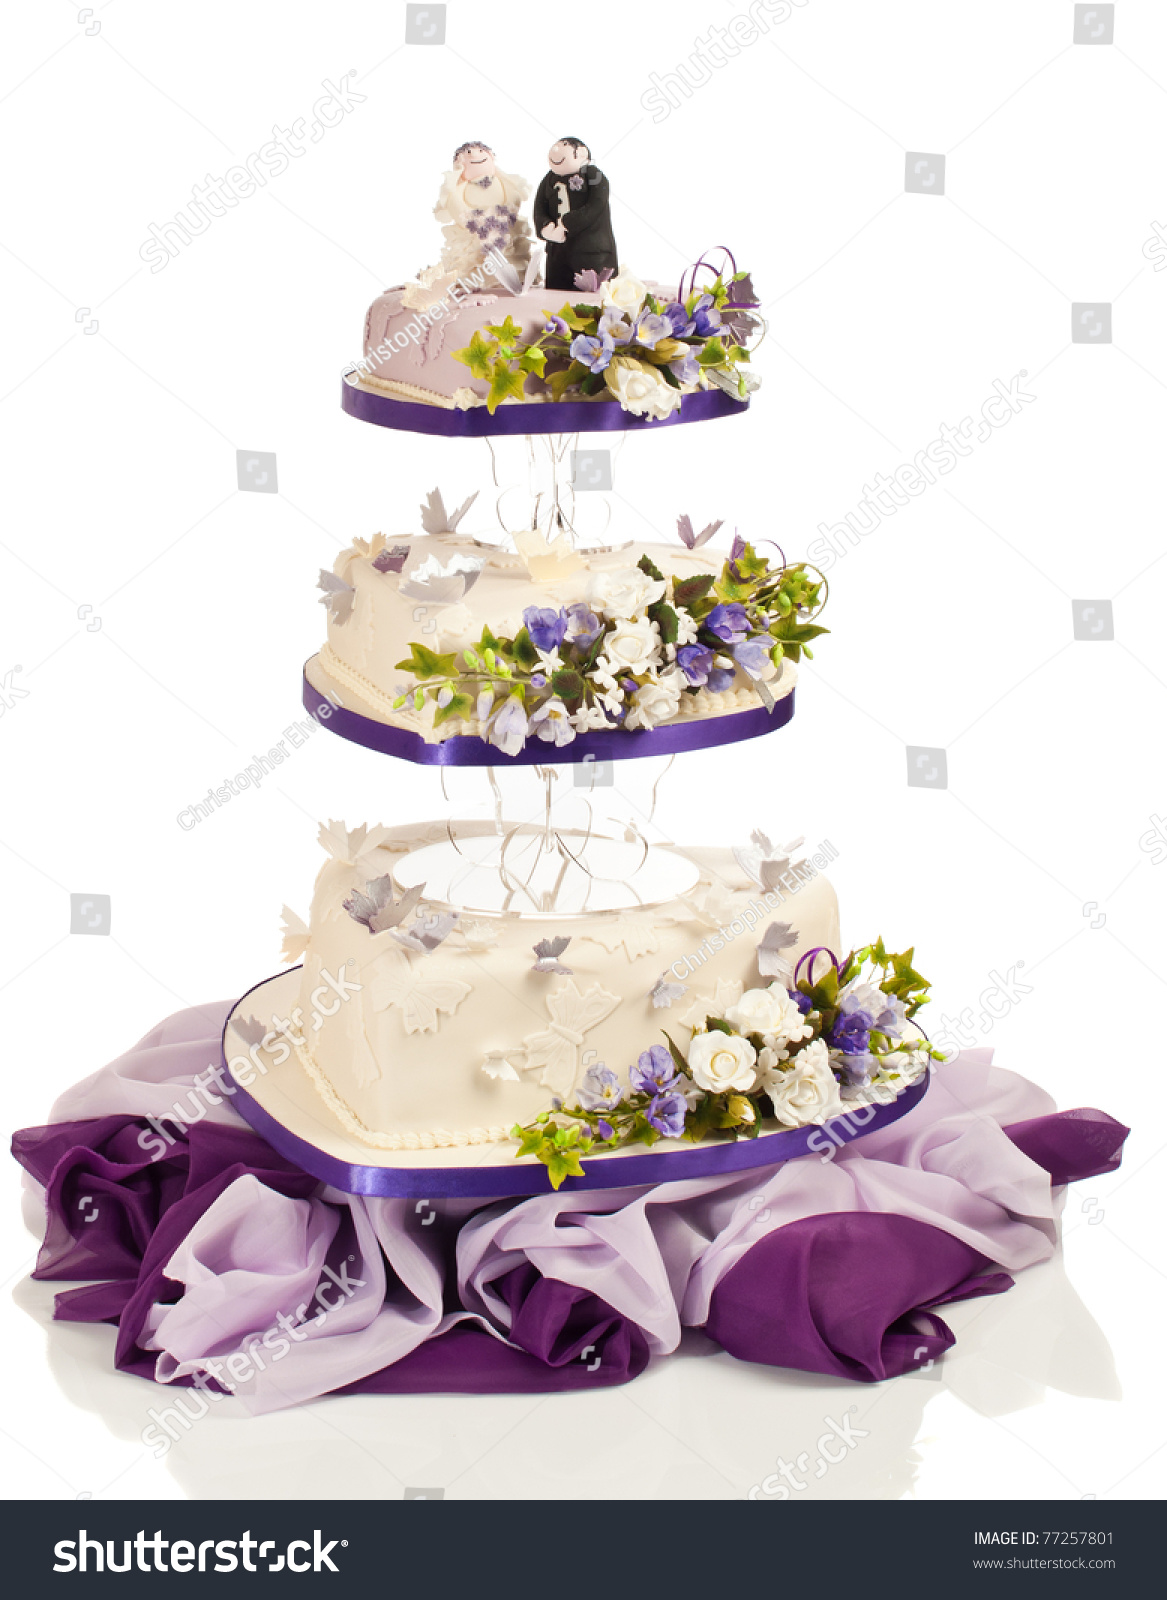 Heart Shaped Wedding Cake In Three Tiers With Flowers And Butterflies Made  From Sugar Icing On